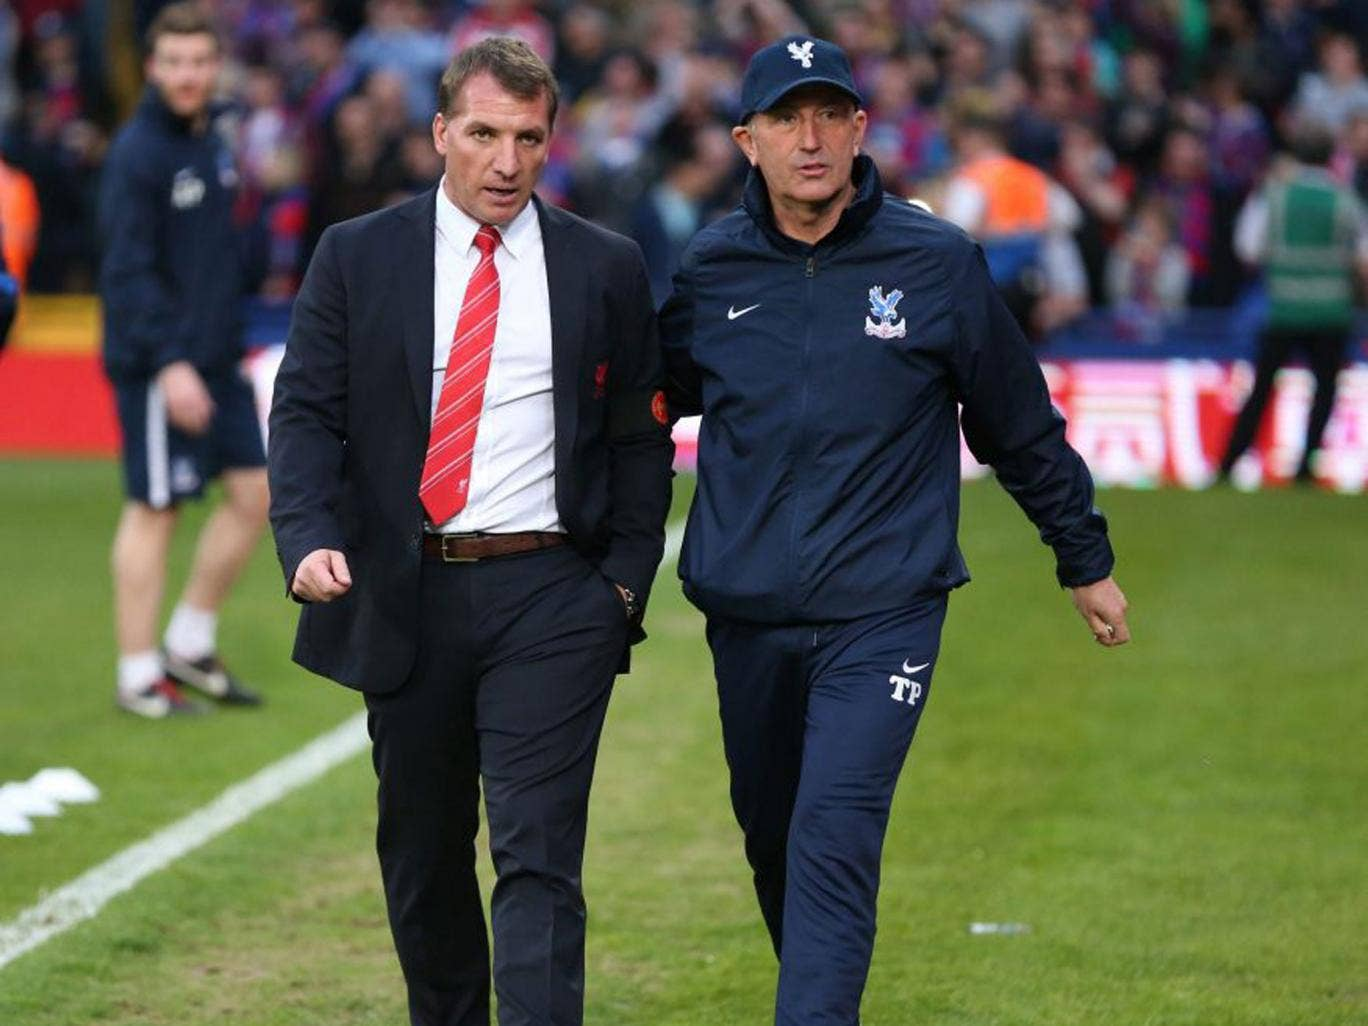 Palace manager Tony Pulis, right, alongside Brendan Rodgers before the start of last night's match at Selhurst Park